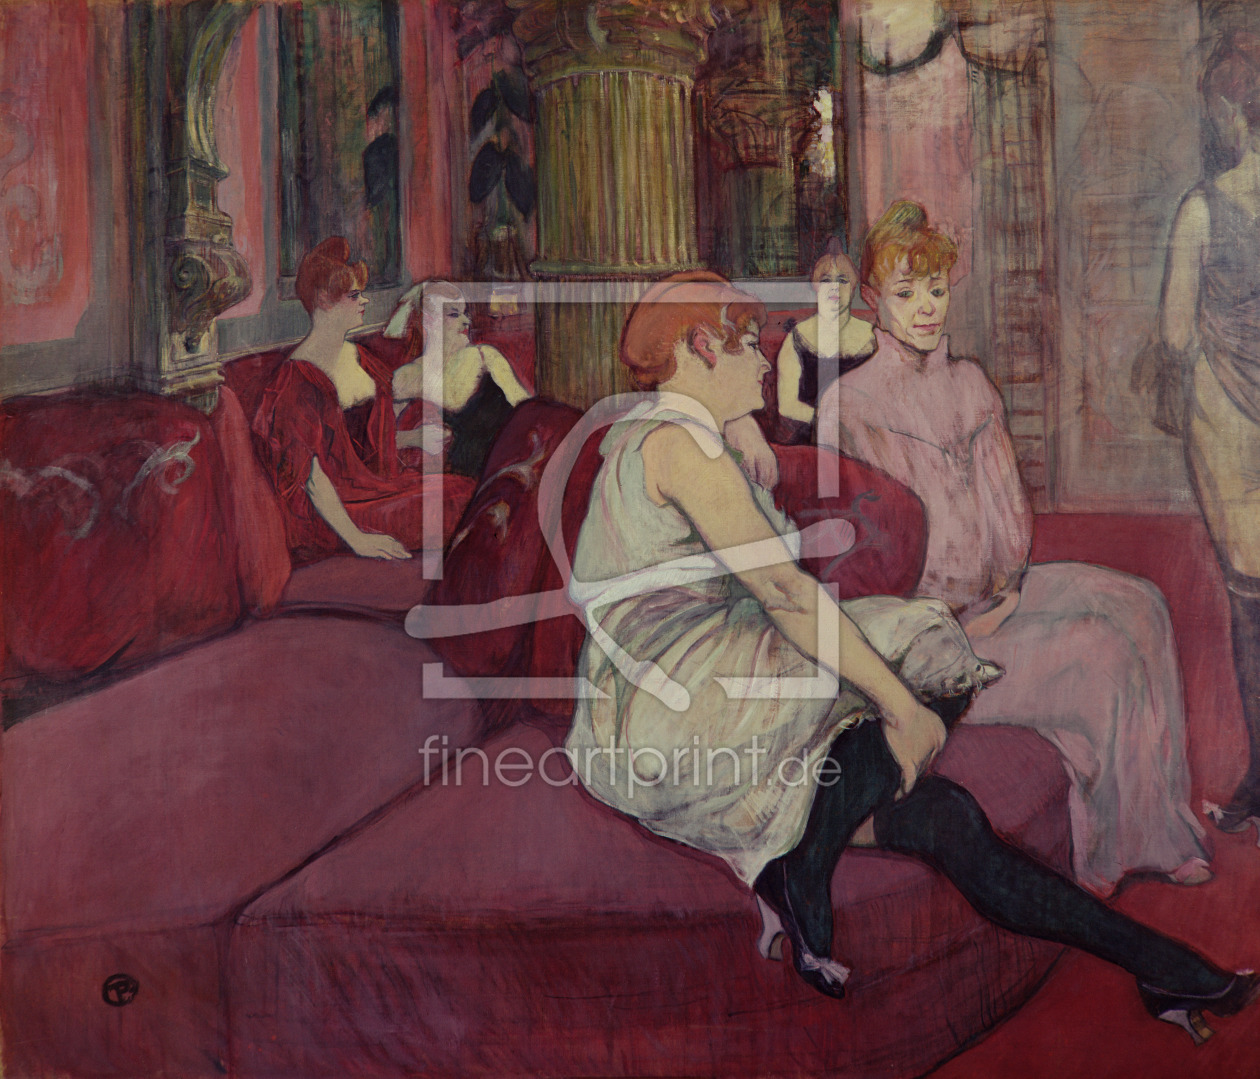 Bild-Nr.: 31002313 In the Salon at the Rue des Moulins, 1894 erstellt von Toulouse-Lautrec, Henri de